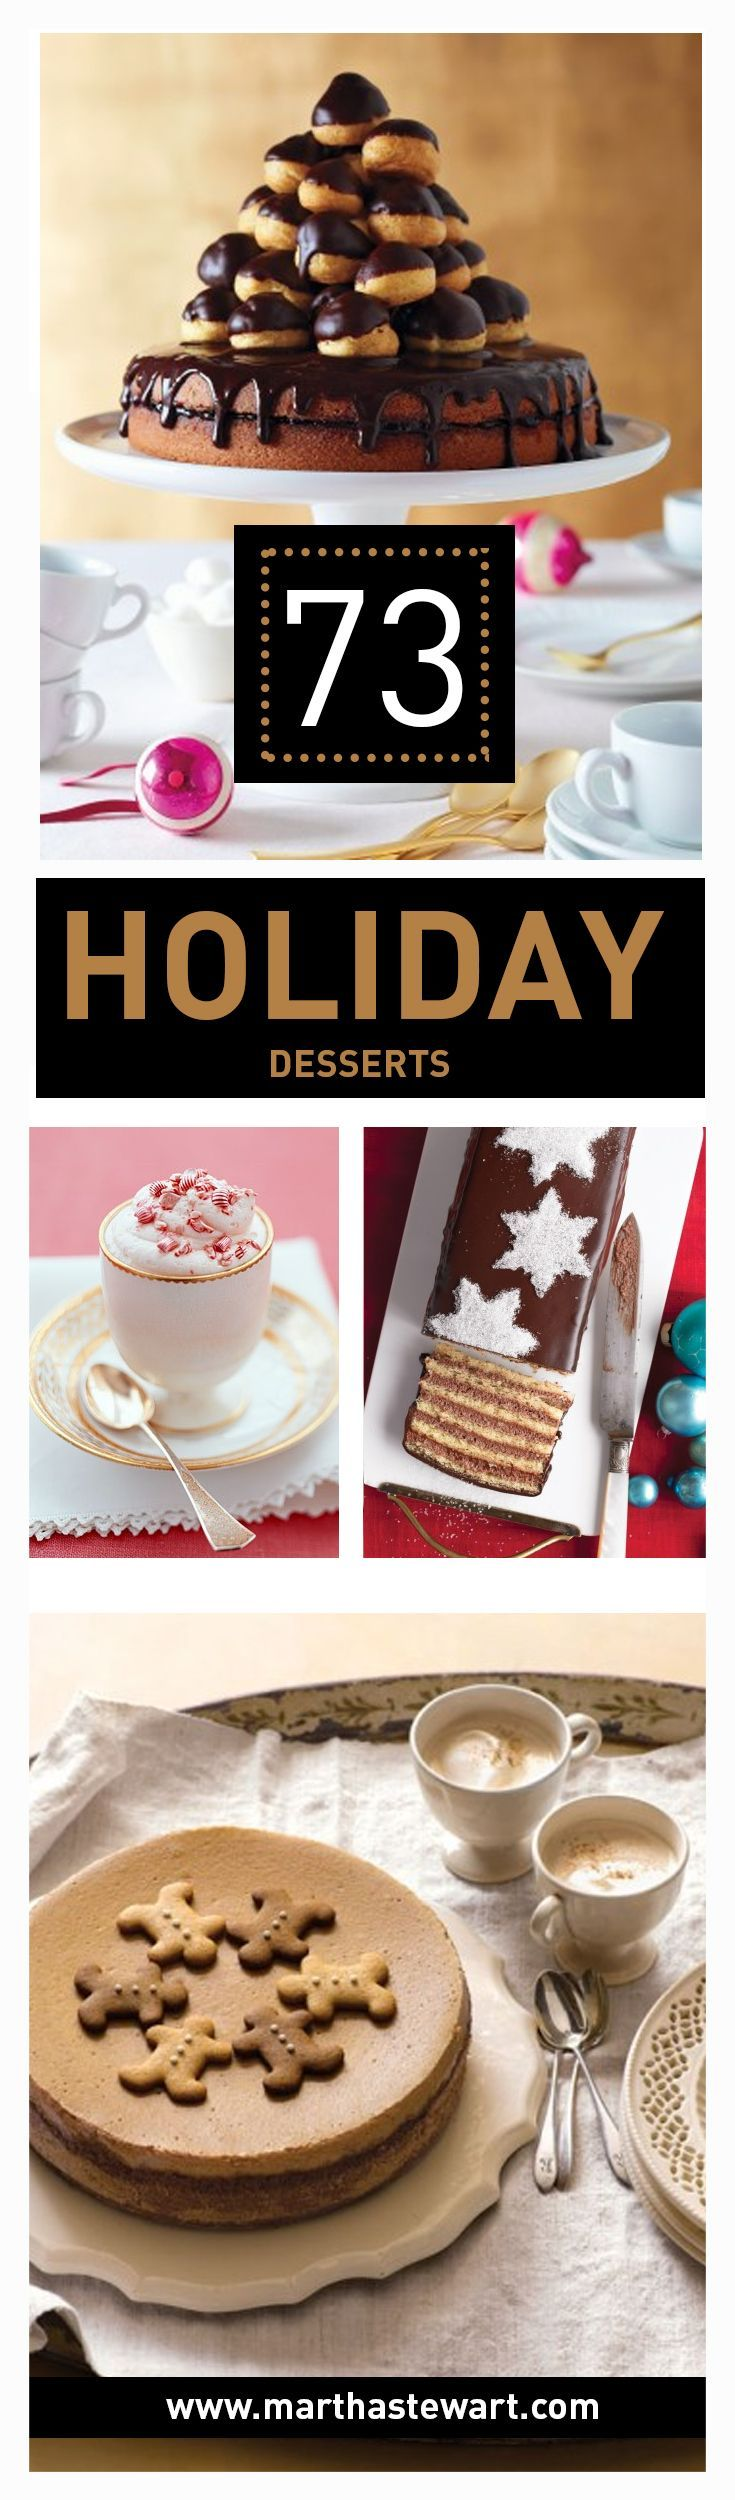 Choose from our collection of showstopping holiday desserts, including triple-chocolate peppermint trifle, gingerbread cheesecake, eggnog mousse, pecan pie, steamed pudding, buche de noel (yule log), poached pears with gingerbread, and croquembouche.